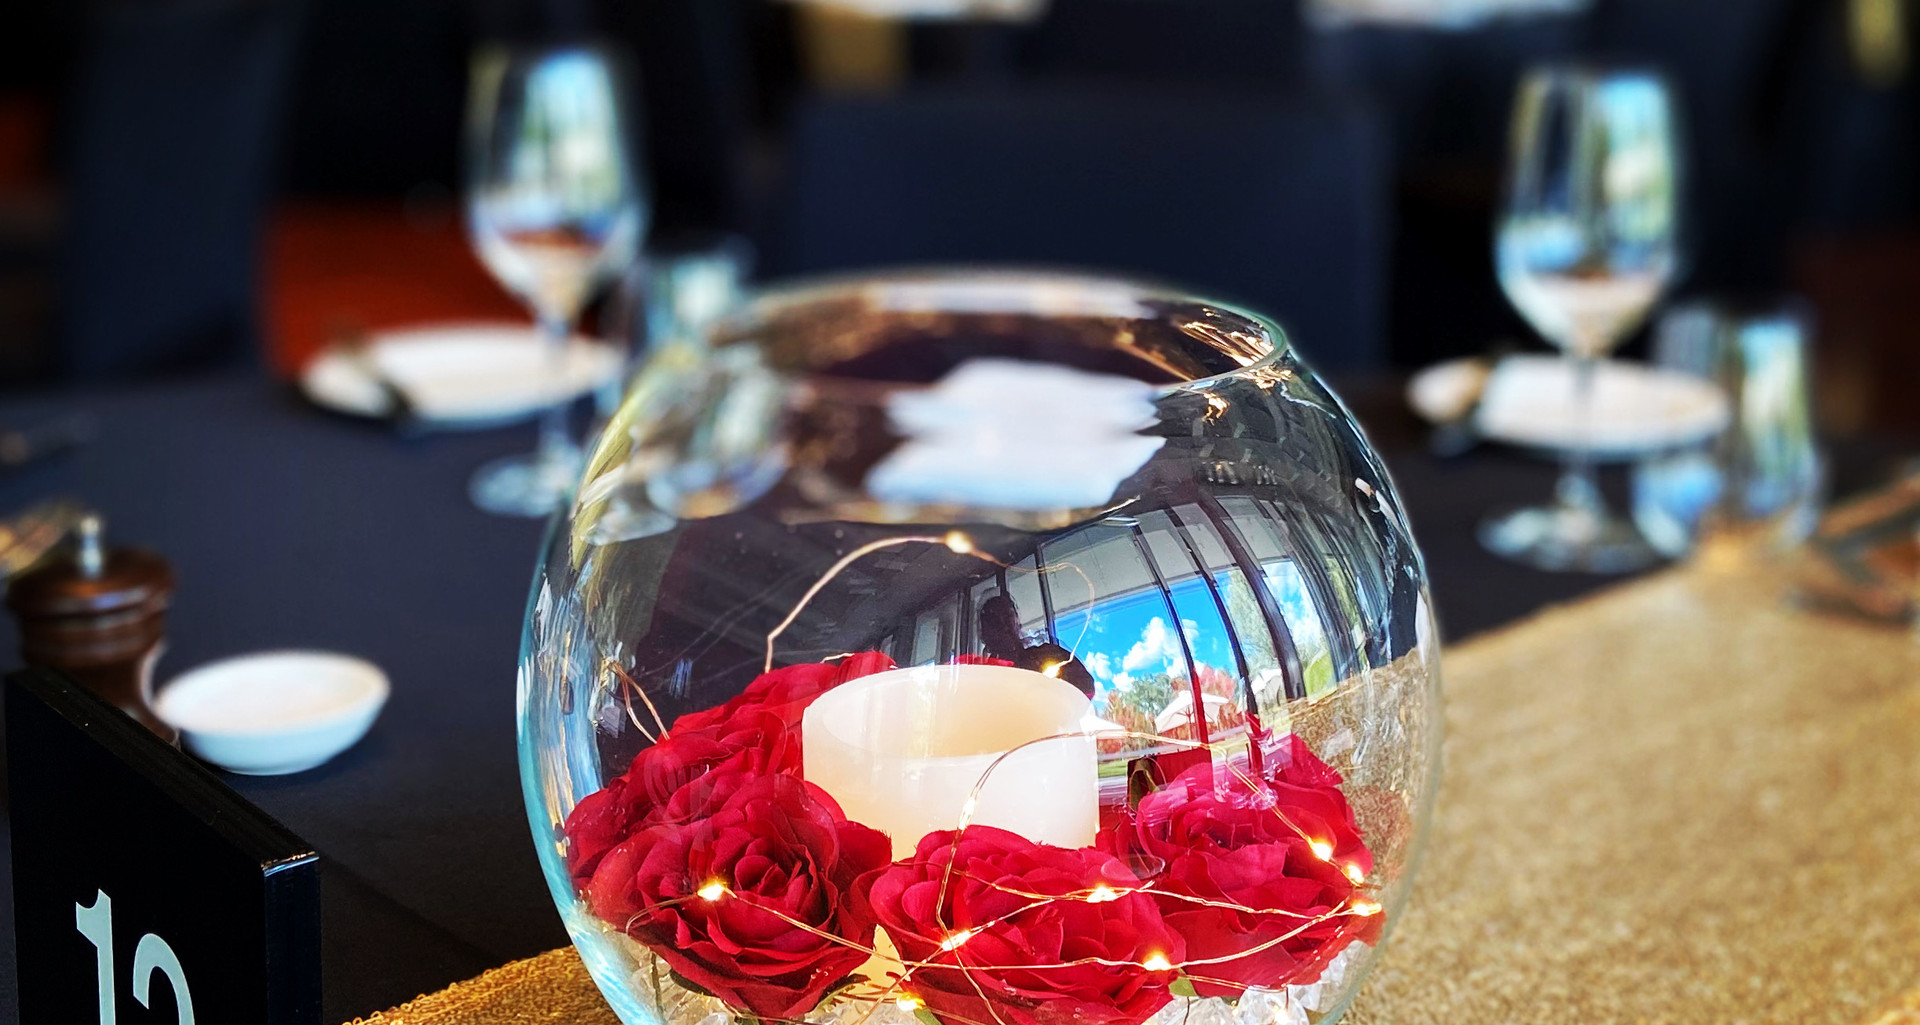 Fishbowl with Flowers Centrepiece